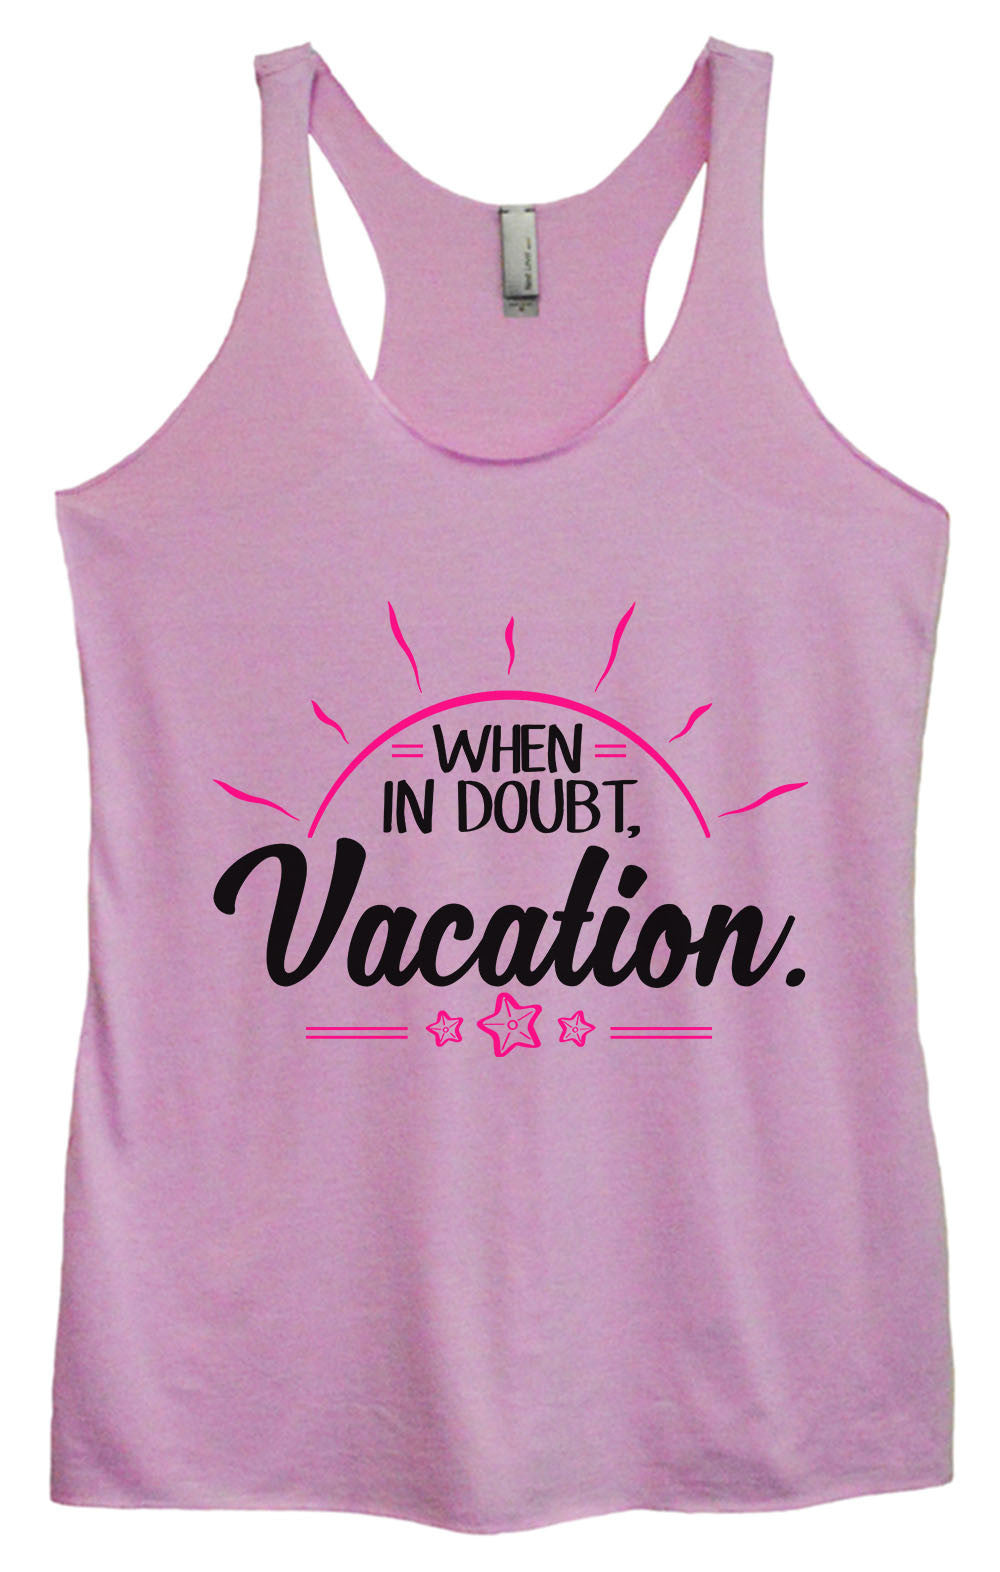 Womens Fashion Triblend Tank Top - When In Doubt. Vacation. - Tri-1390 - Funny Shirts Tank Tops Burnouts and Triblends  - 3